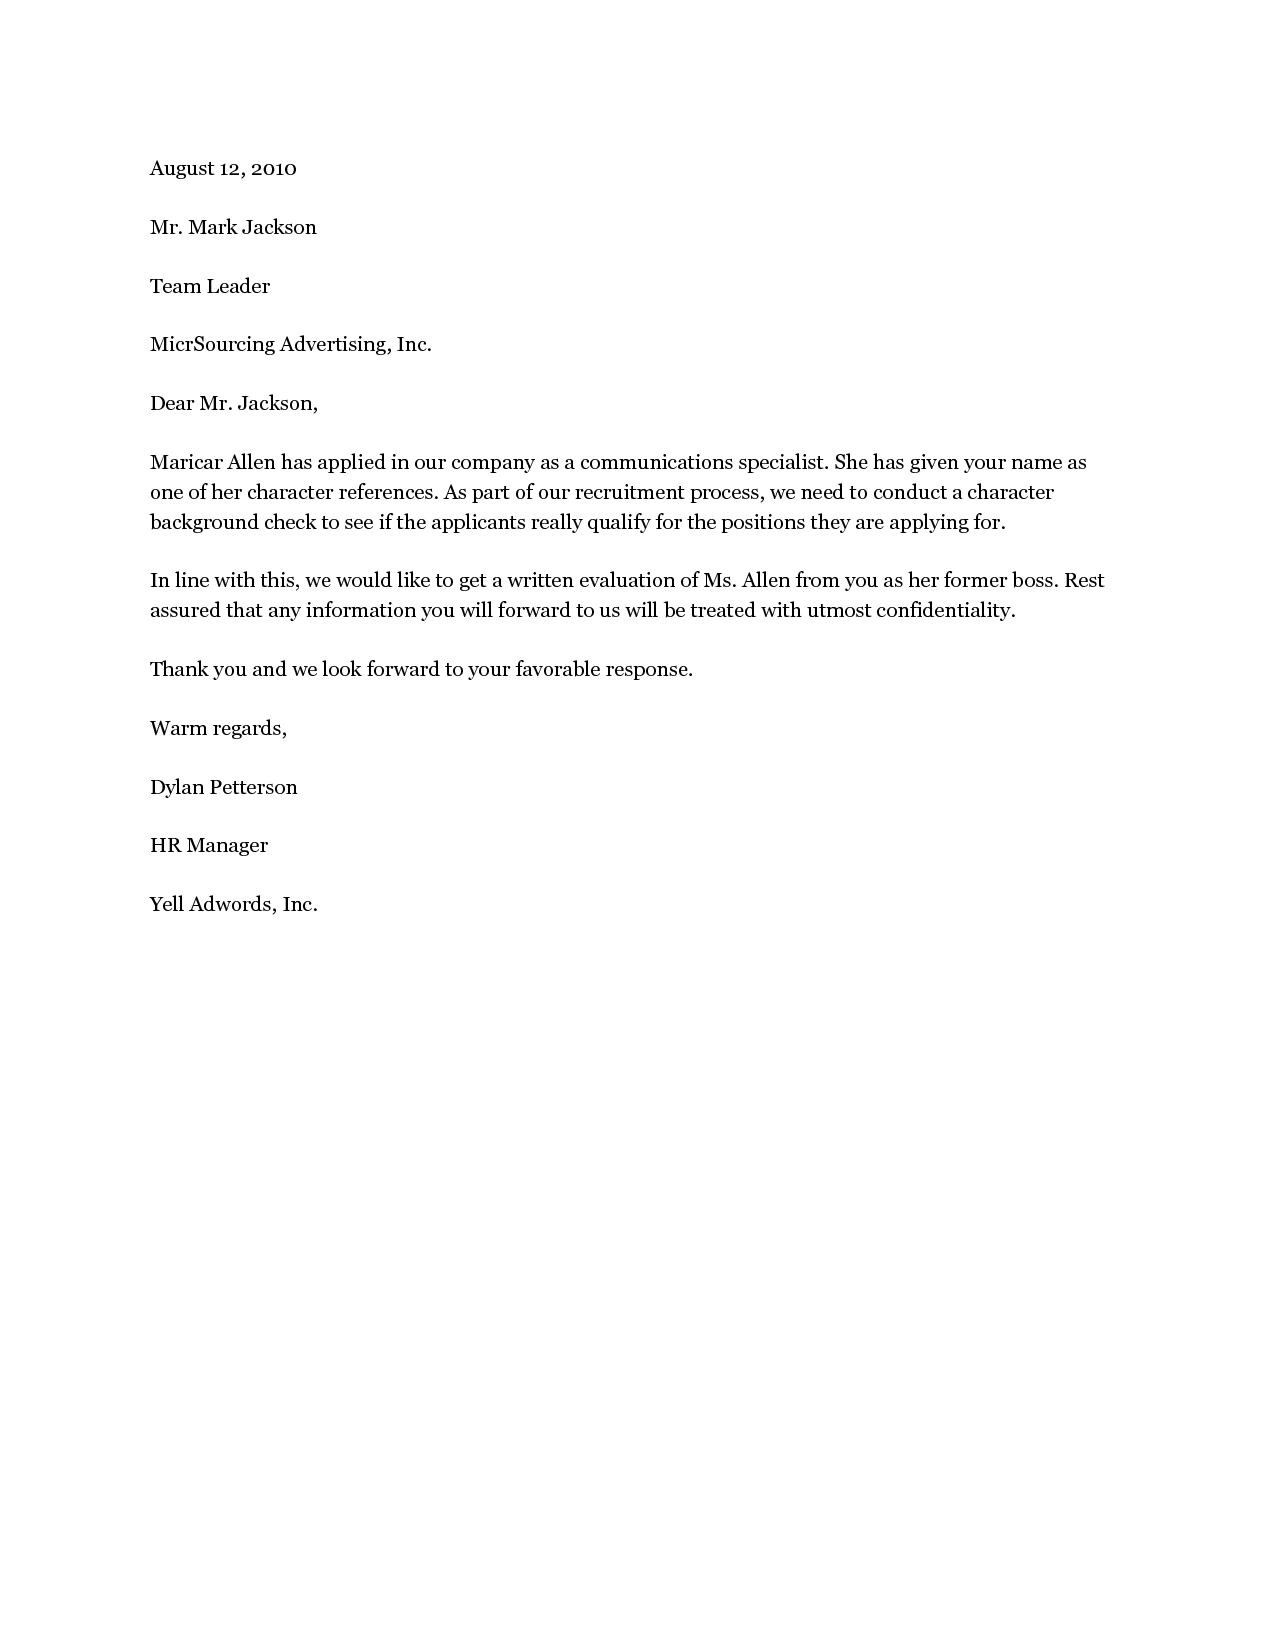 Awesome Template  How To Write A Personal Reference Letter